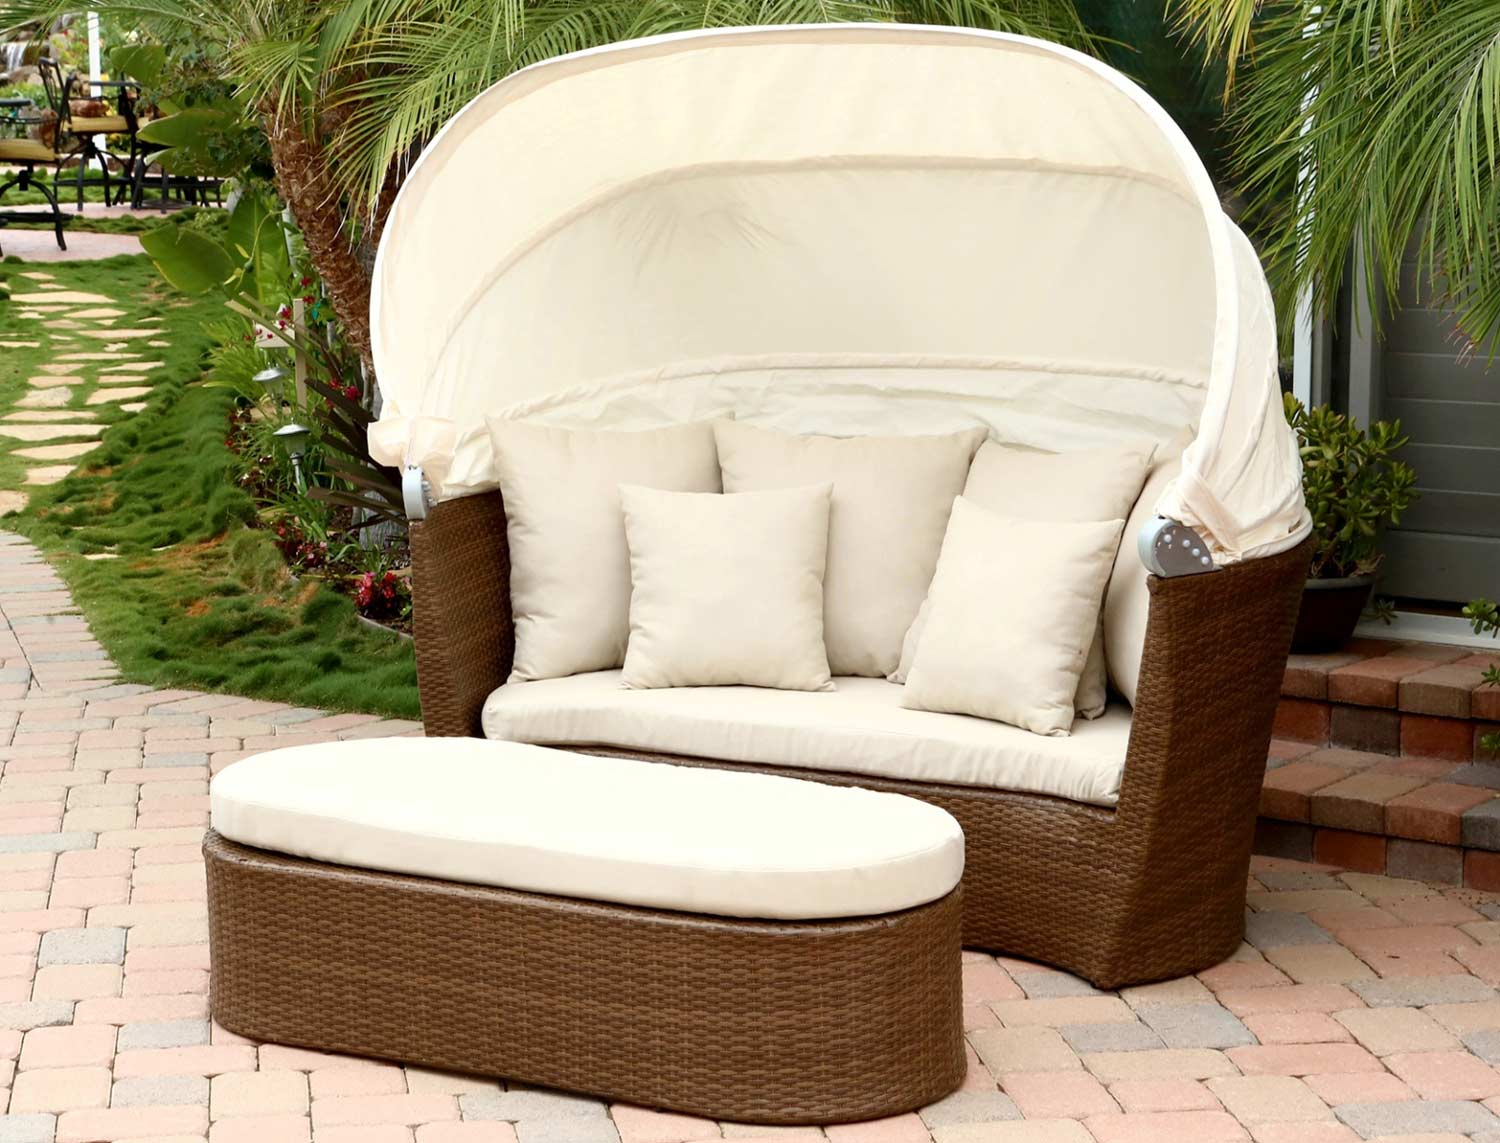 Abbyson Living Palermo Outdoor Wicker Cabana/Canopy Set - Brown  AB-DL-RLS001 at Homelement.com - Abbyson Living Palermo Outdoor Wicker Cabana/Canopy Set - Brown AB